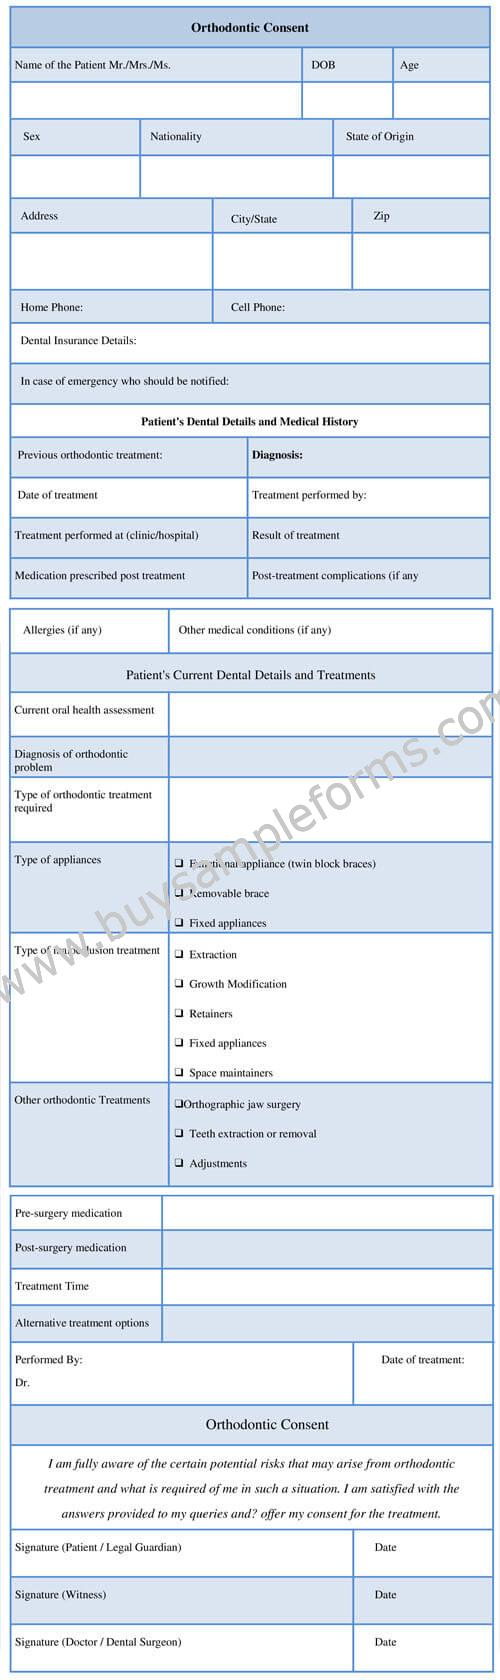 Orthodontic Consent Form Template, Sample